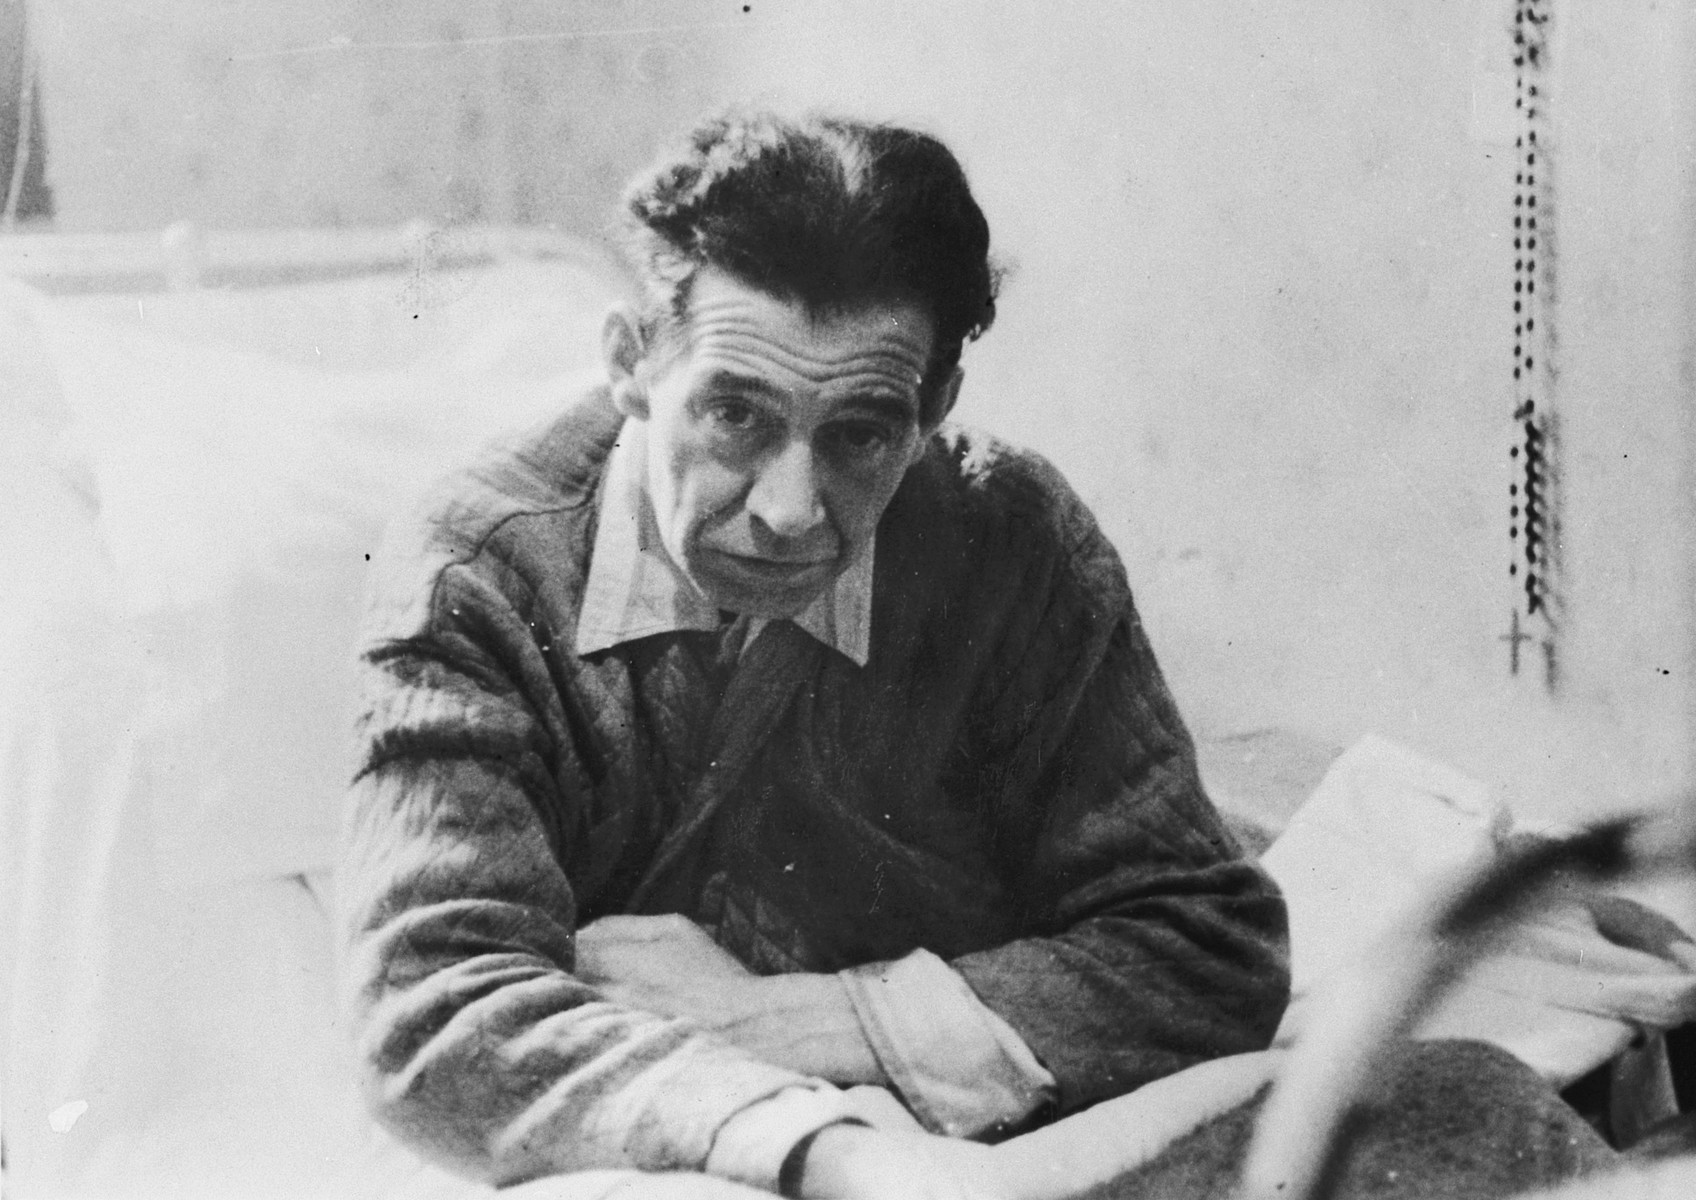 Photograph of Major van Roosbroeck in a hospital after his liberation from the Breendonck internment camp.